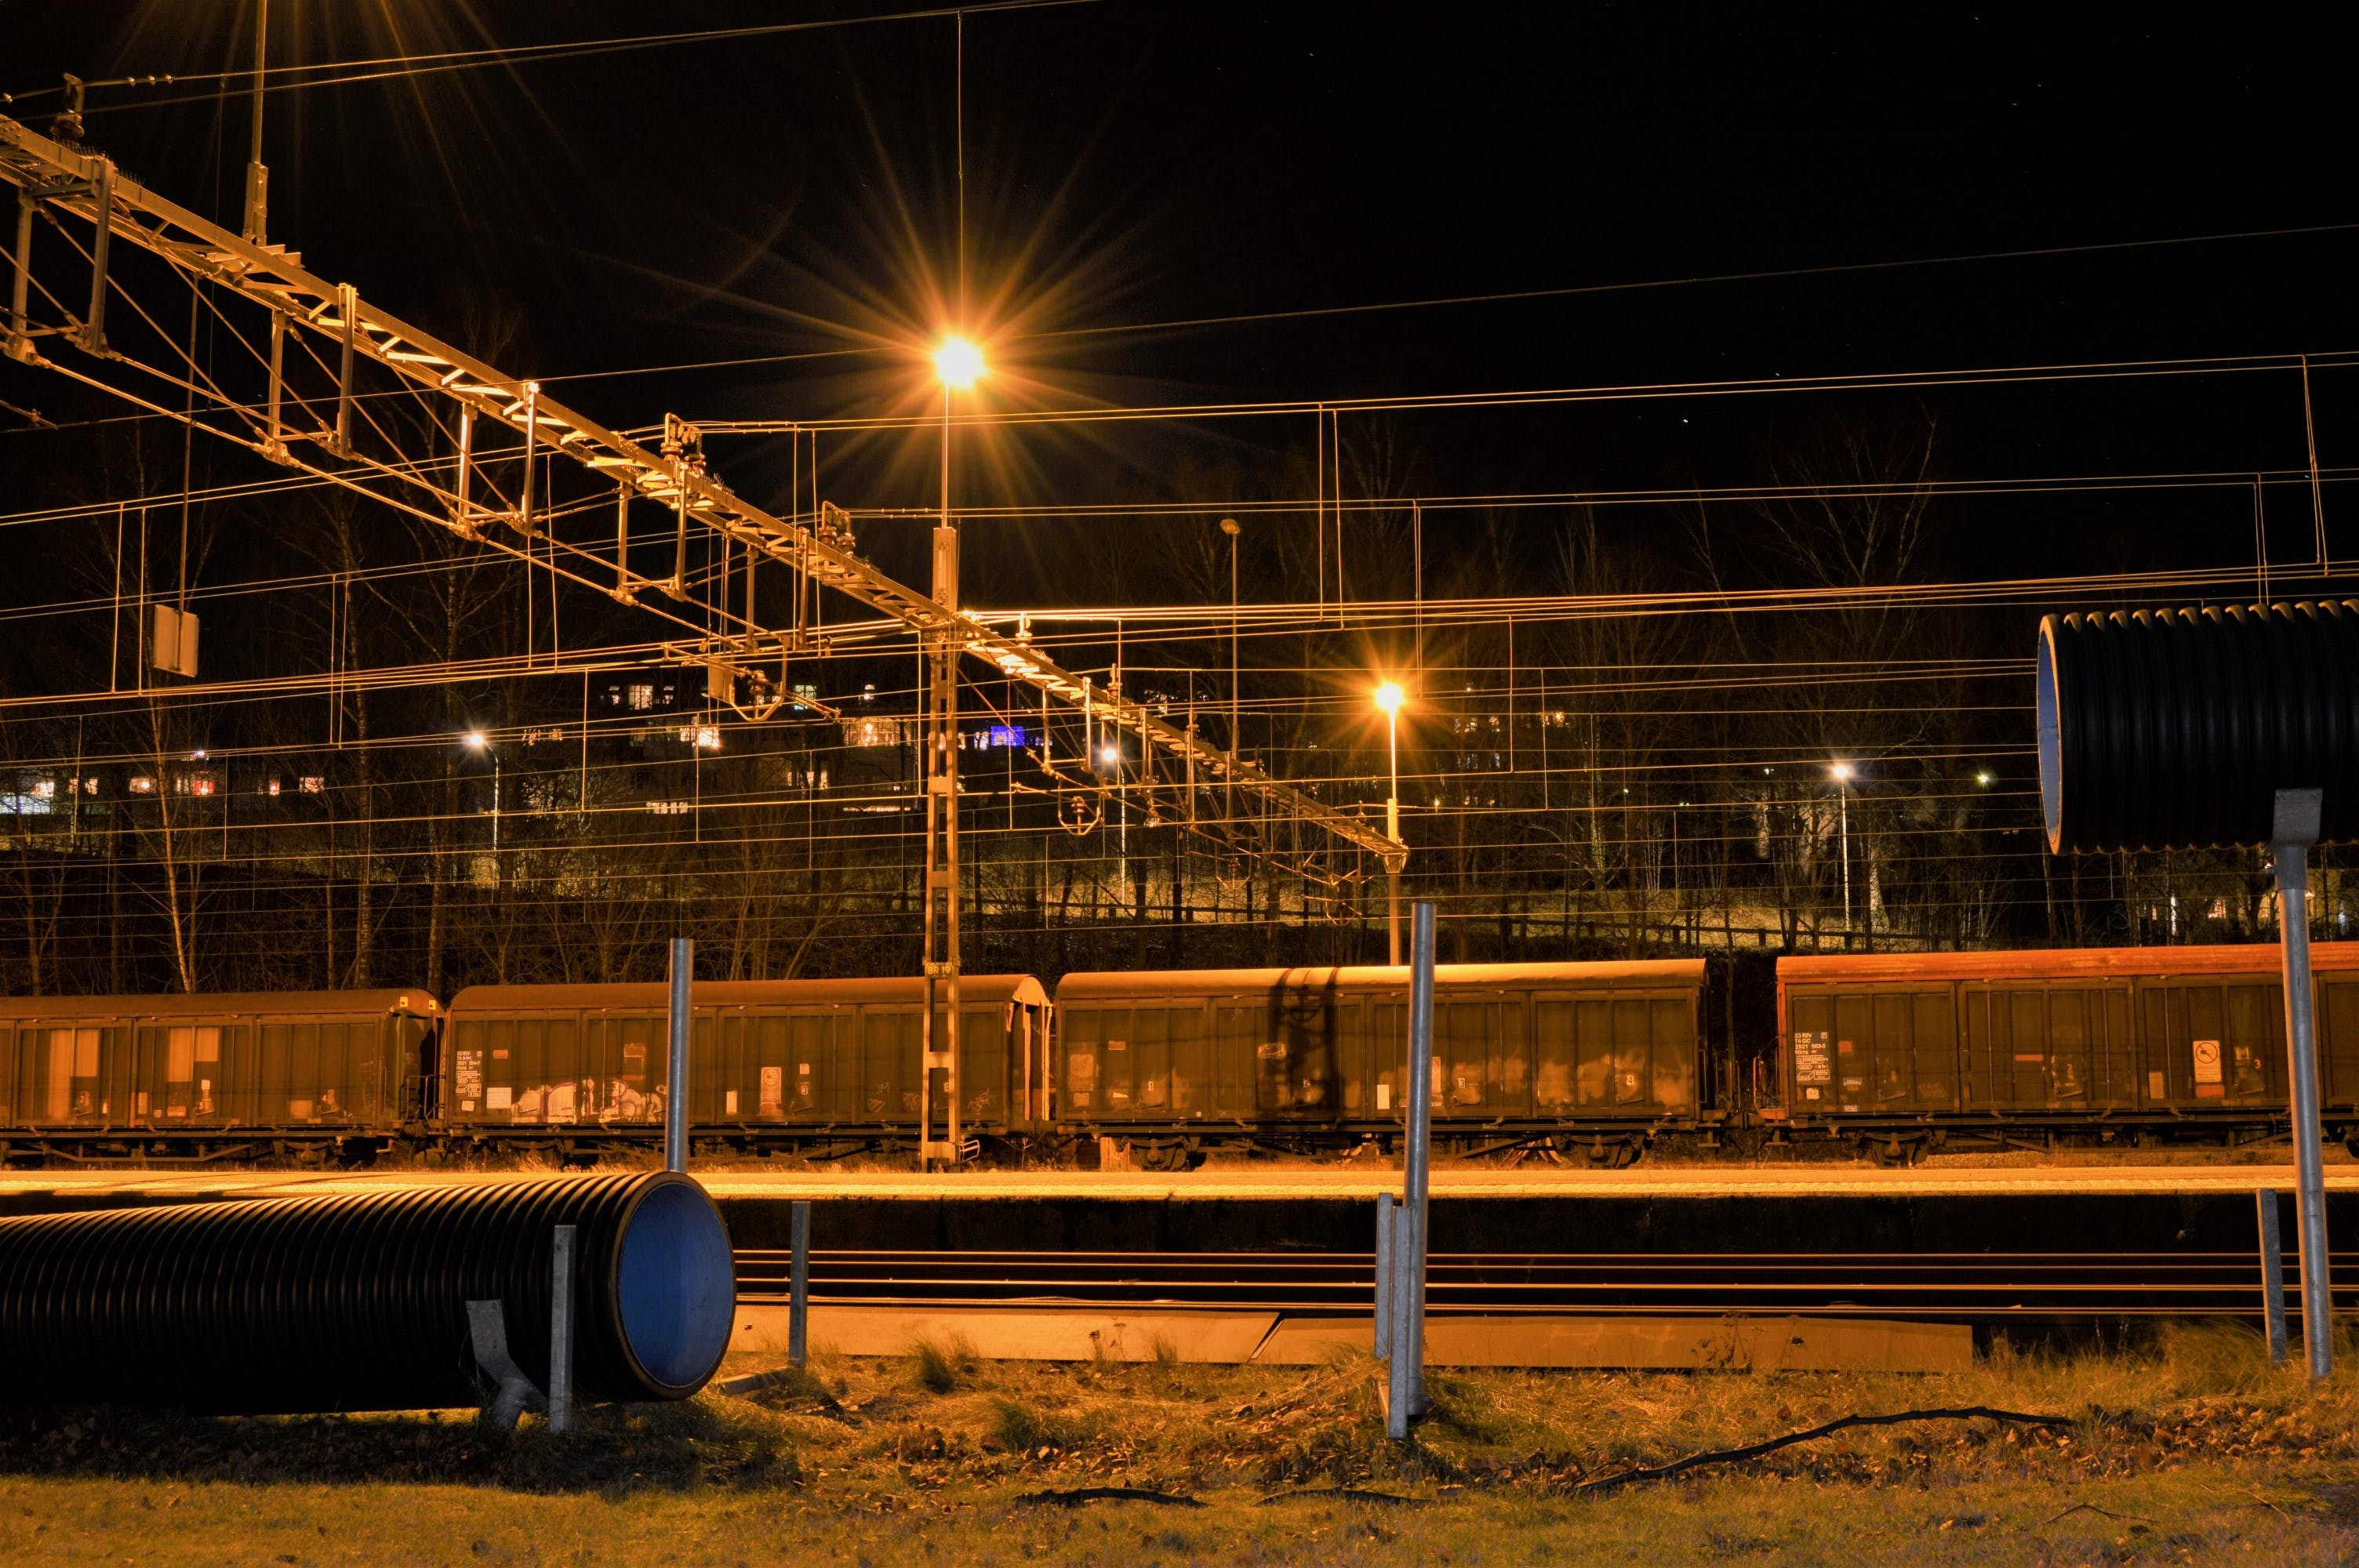 Free stock photo of light, lights, night, train